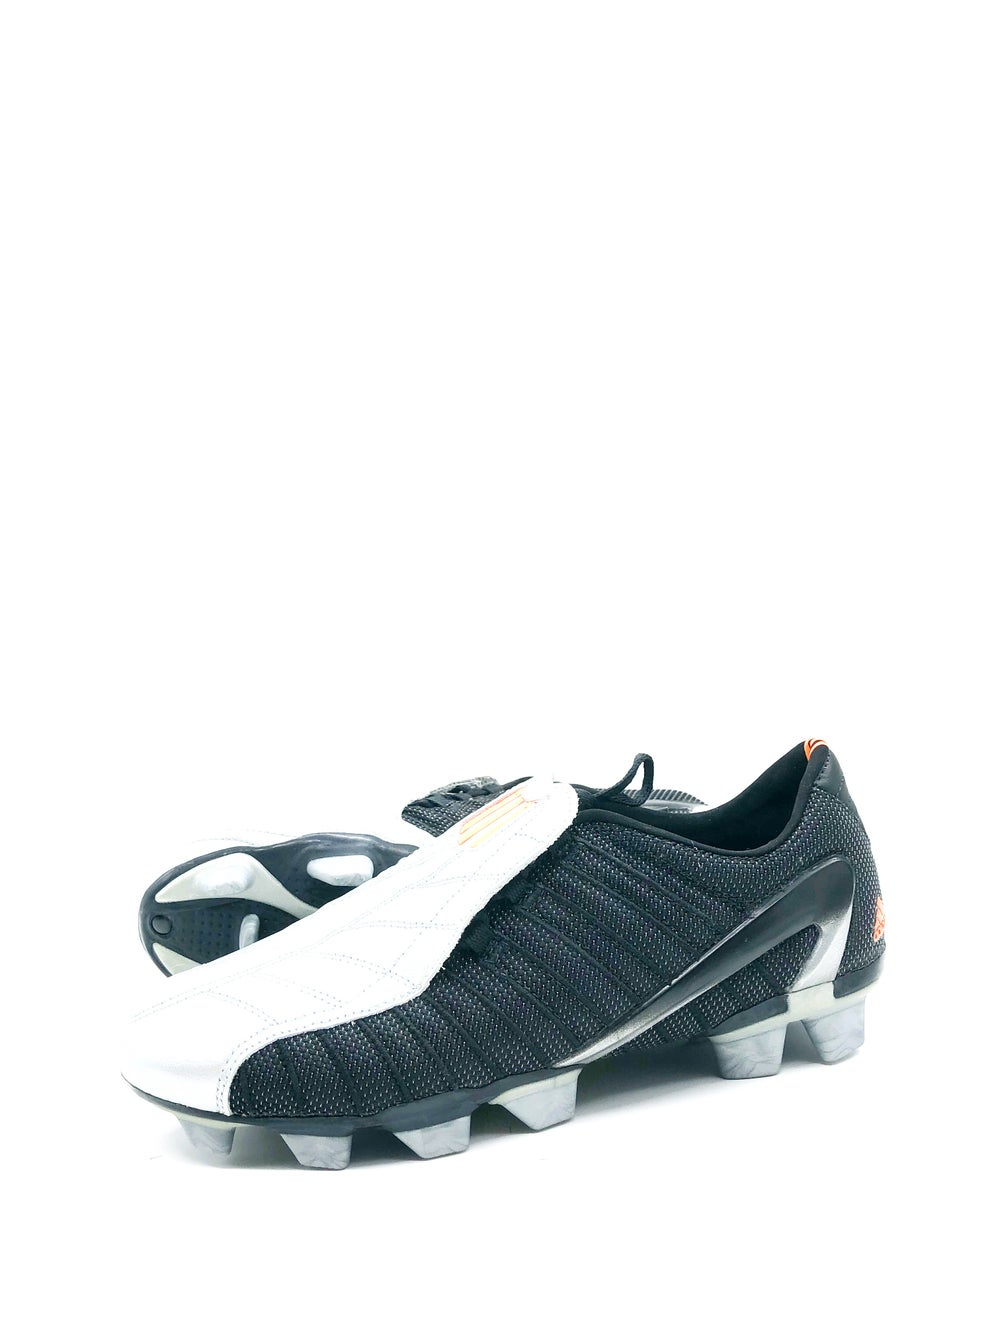 Image of Adidas F50 Trx FG GREY